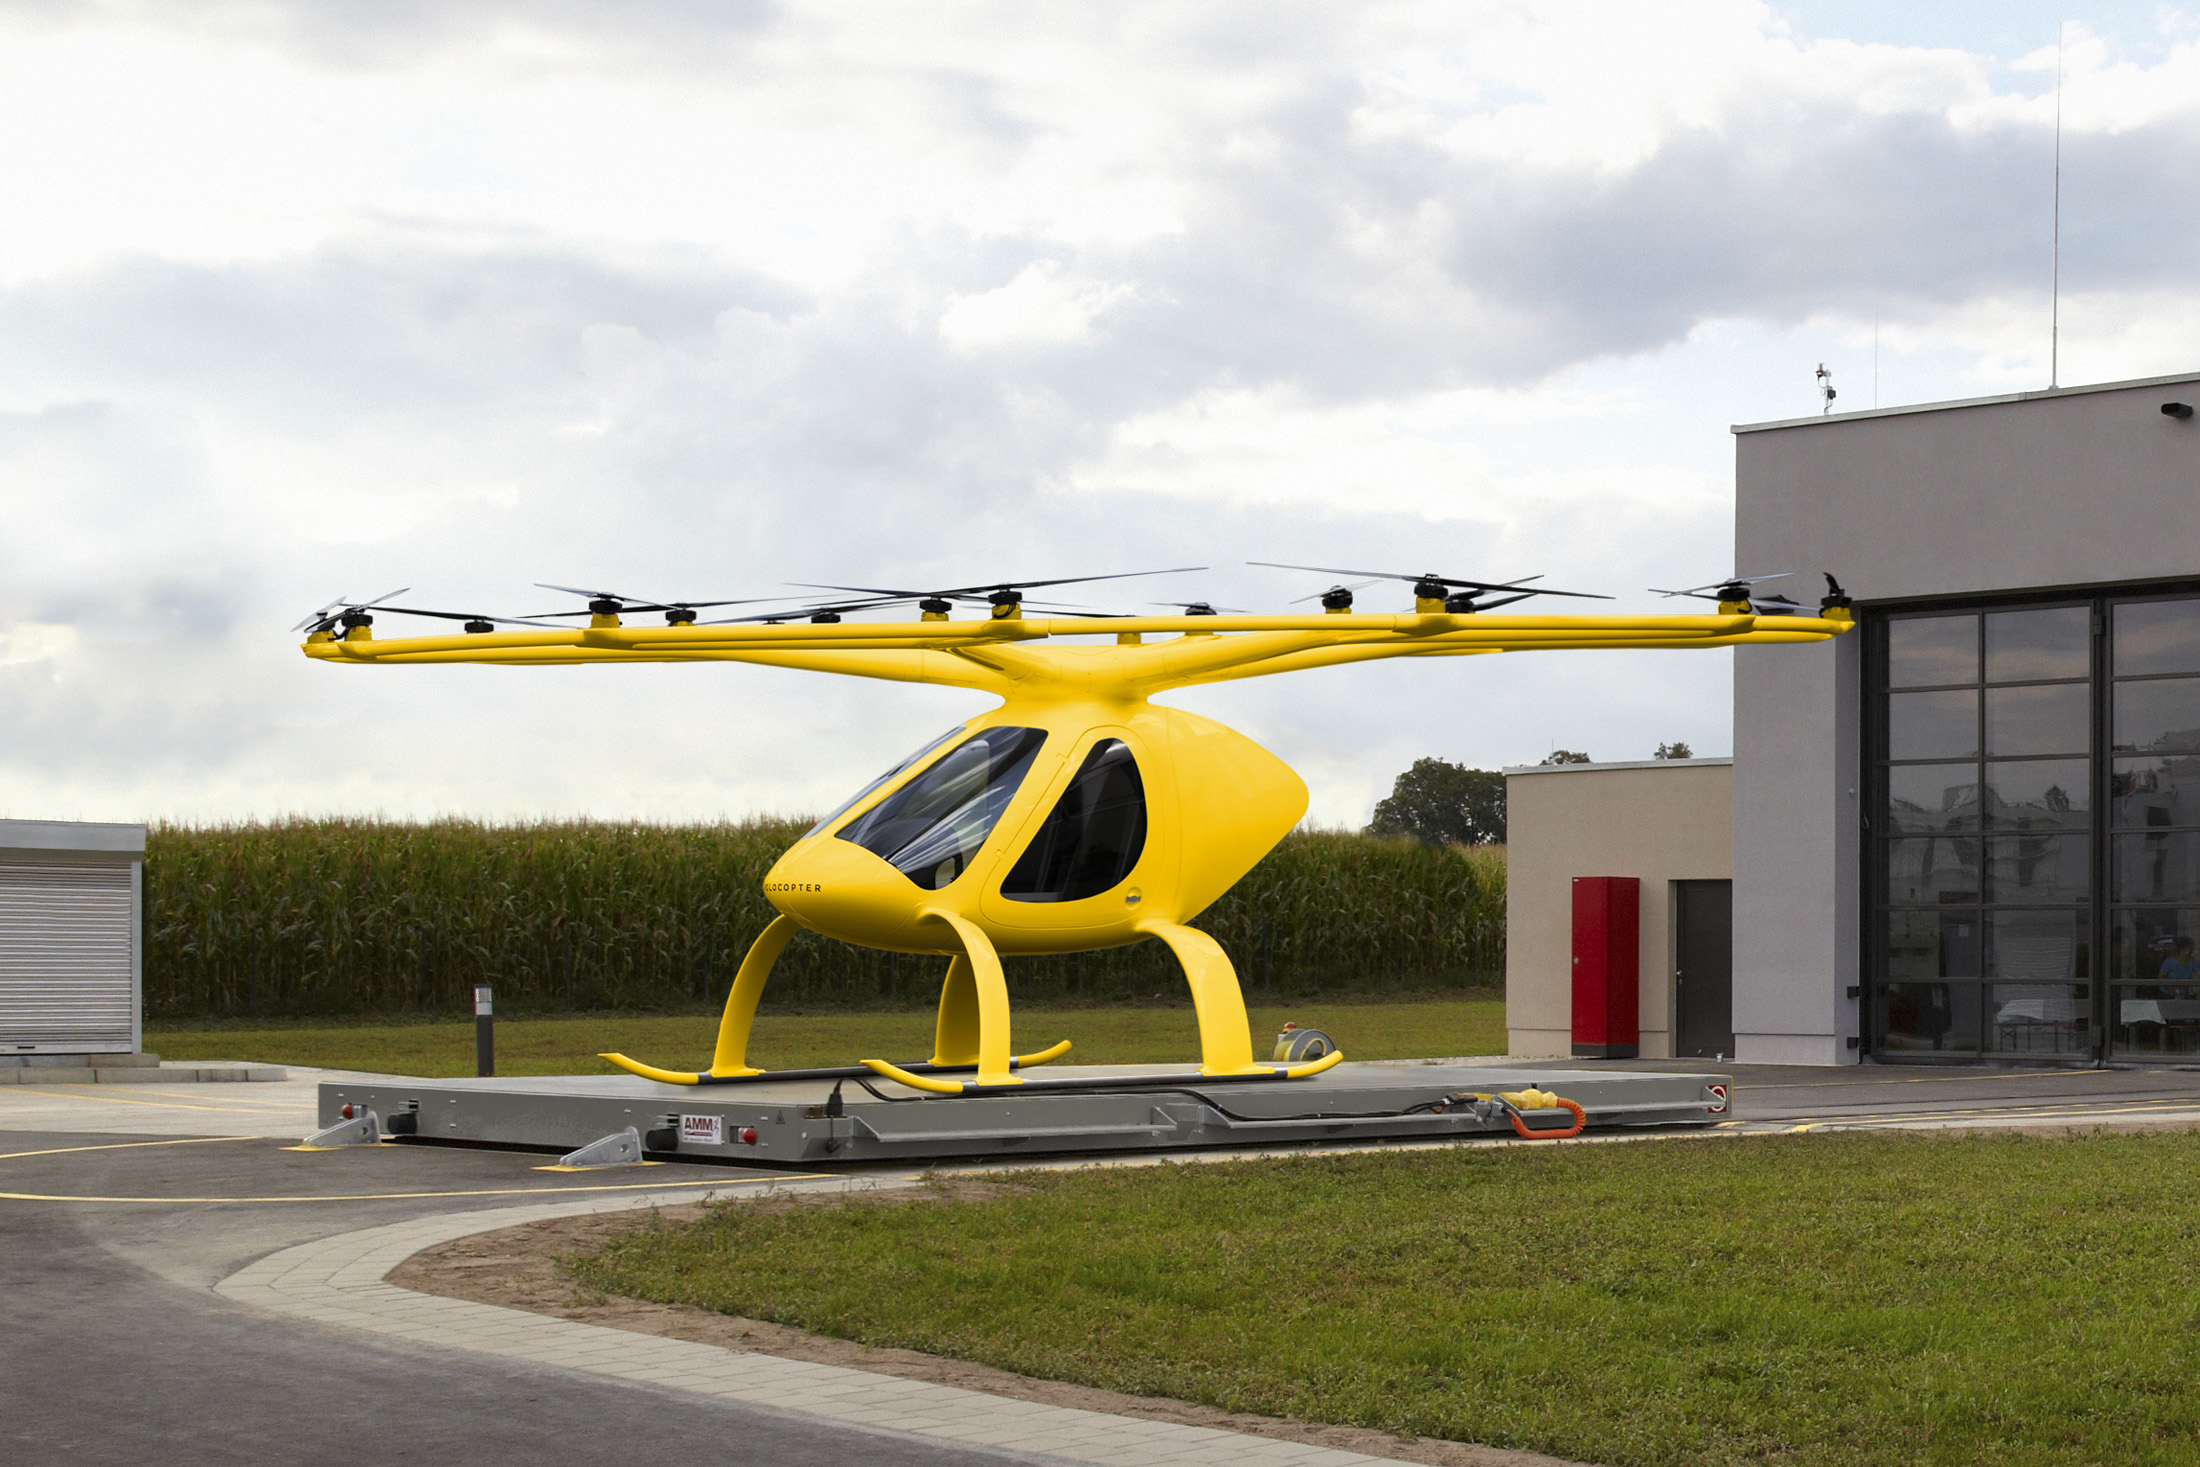 , ADAC air rescue testing manned multicopters in emergency medical services